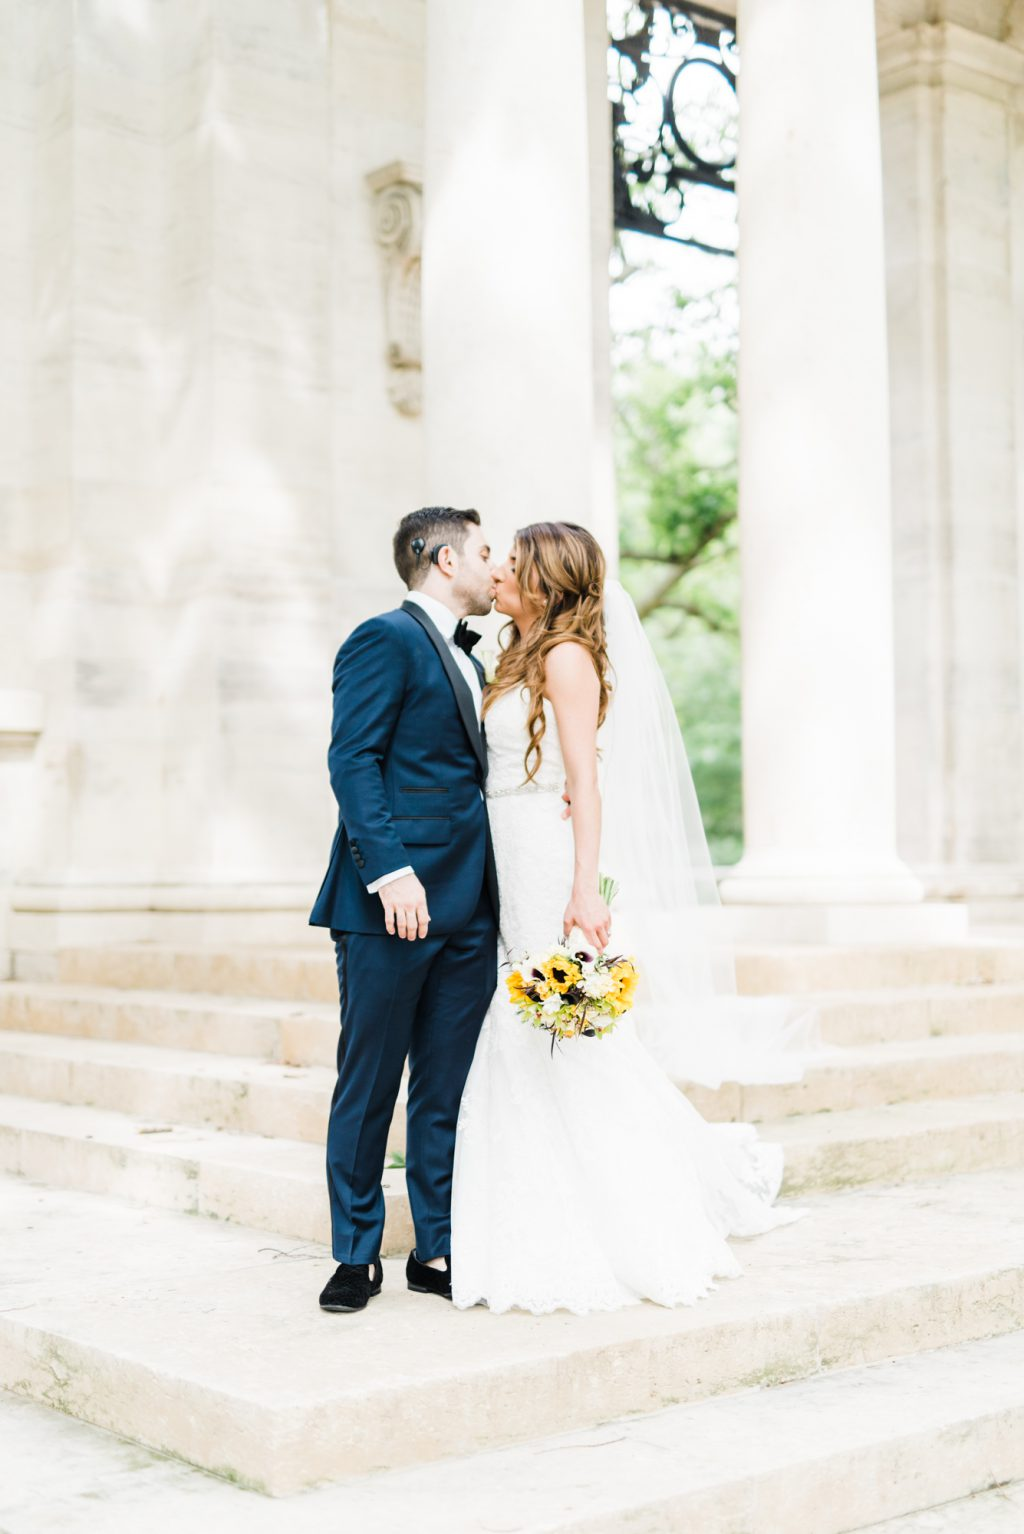 haleyrichterphoto-front-and-palmer-spring-wedding-rodin-museum-loews-hotel-philadelphia-095